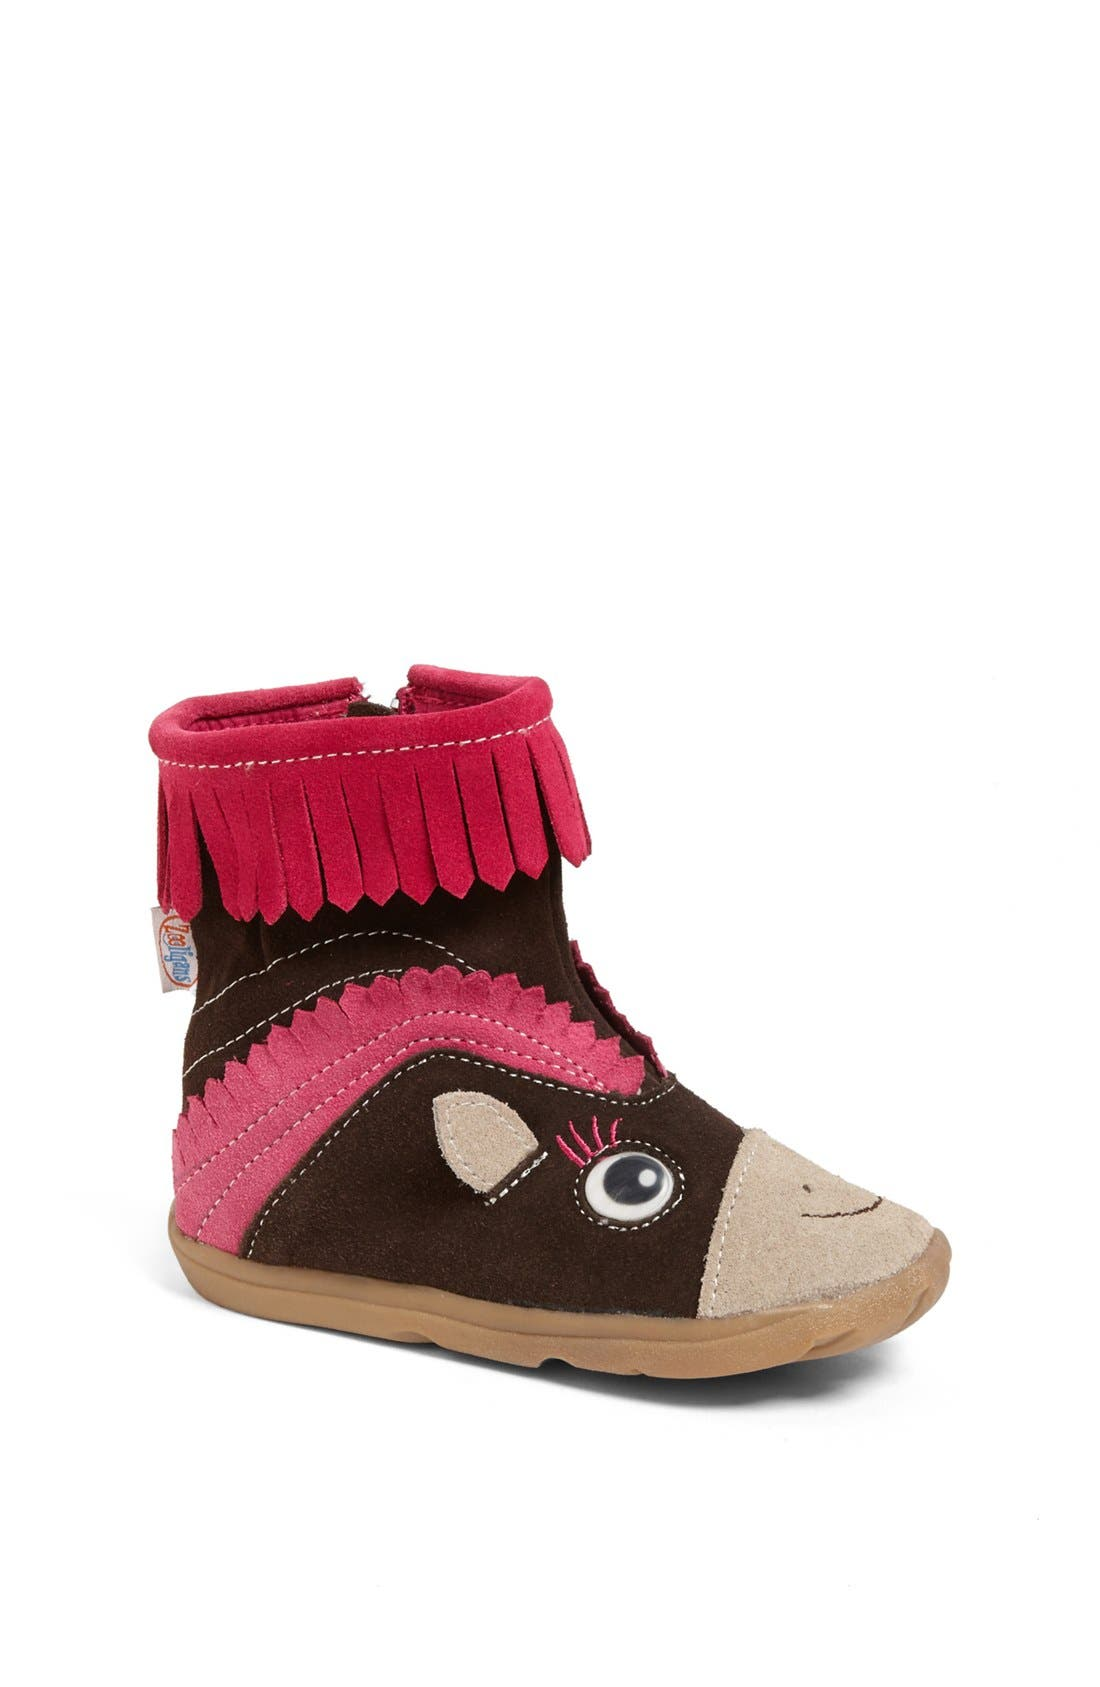 Main Image - Zooligans 'Paloma the Pony' Boot (Baby, Walker, Toddler & Little Kid)